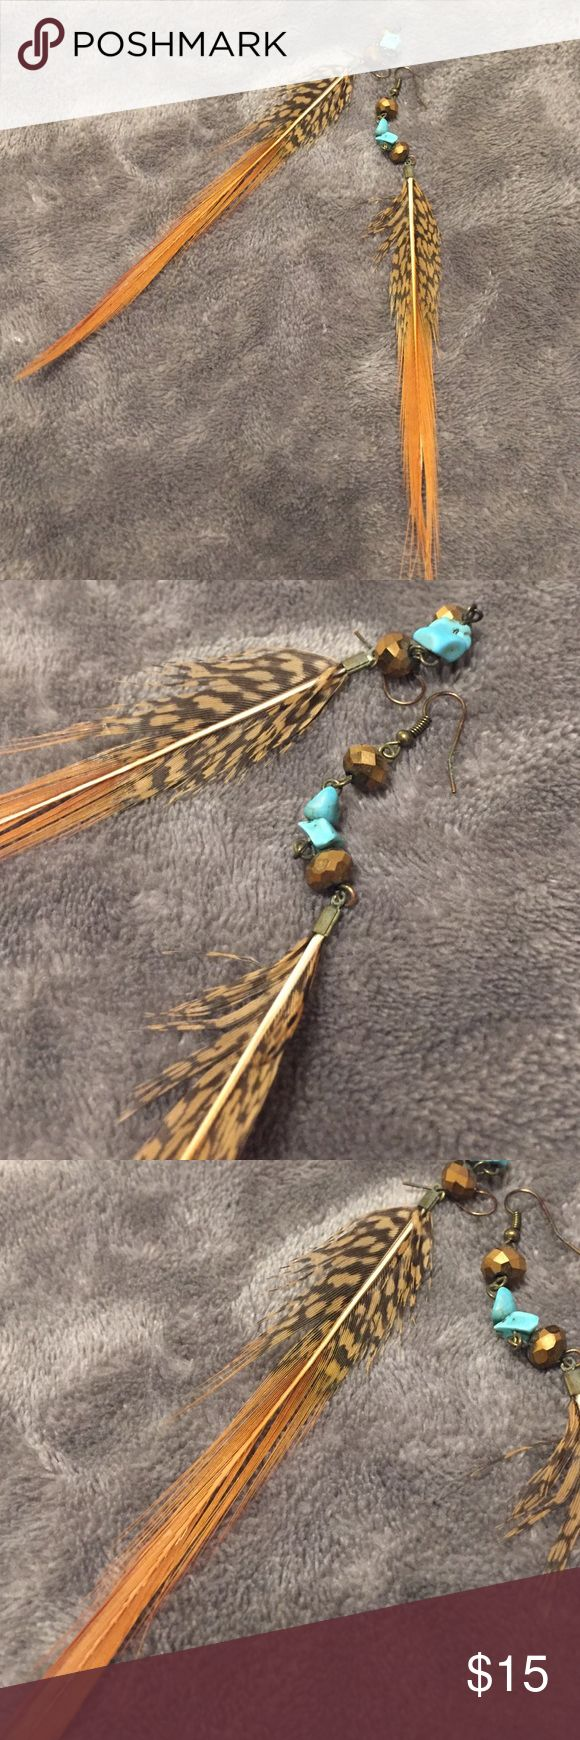 Orange and turquoise feather earrings Lights and pretty orange and turquoise feather earrings Jewelry Earrings